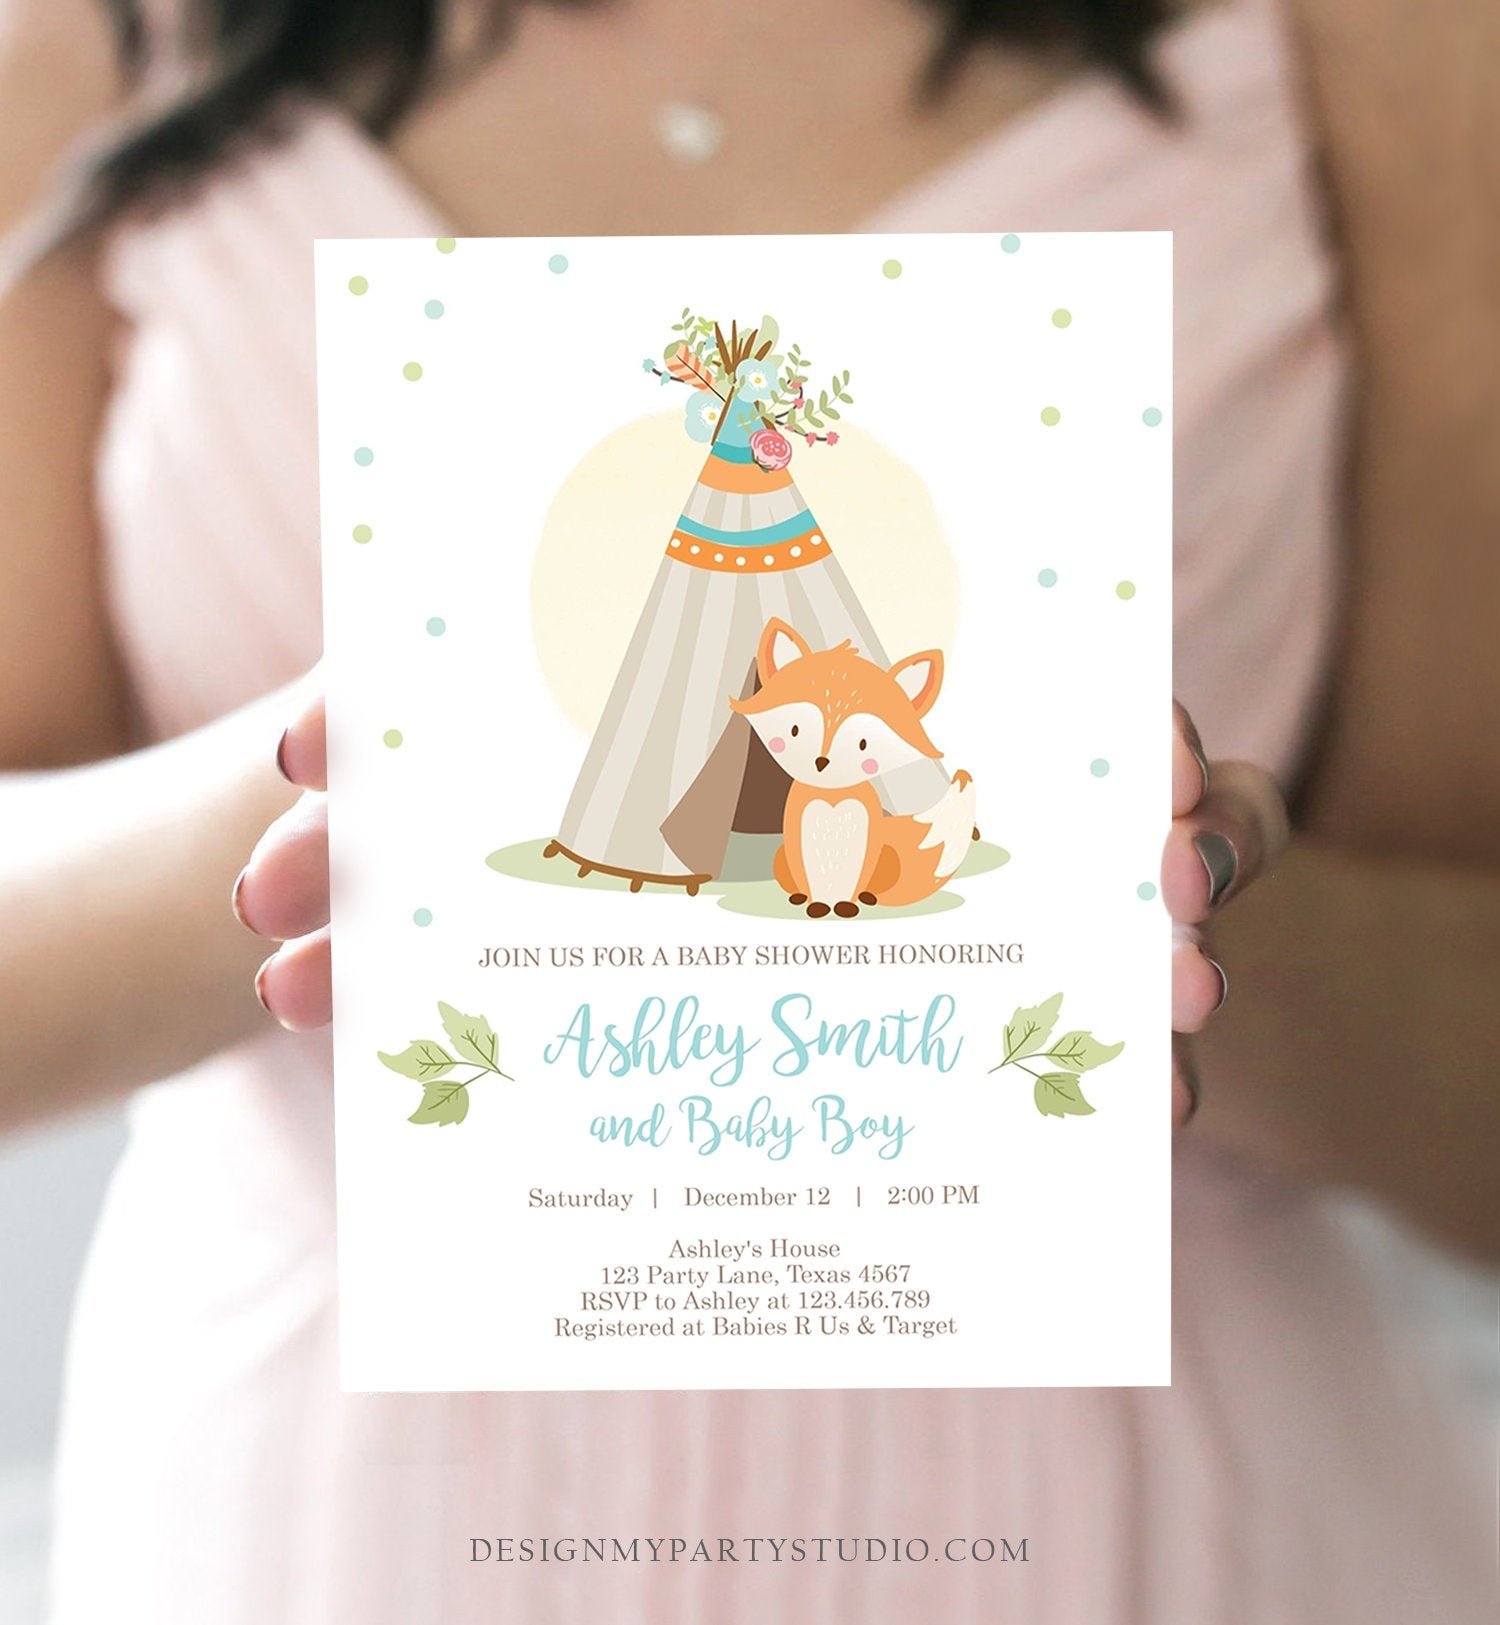 Editable Fox Baby Shower Invitation Woodland Teepee Boho Tribal Boy Baby Shower Blue Simple Download Printable Template Corjl Digital 0052